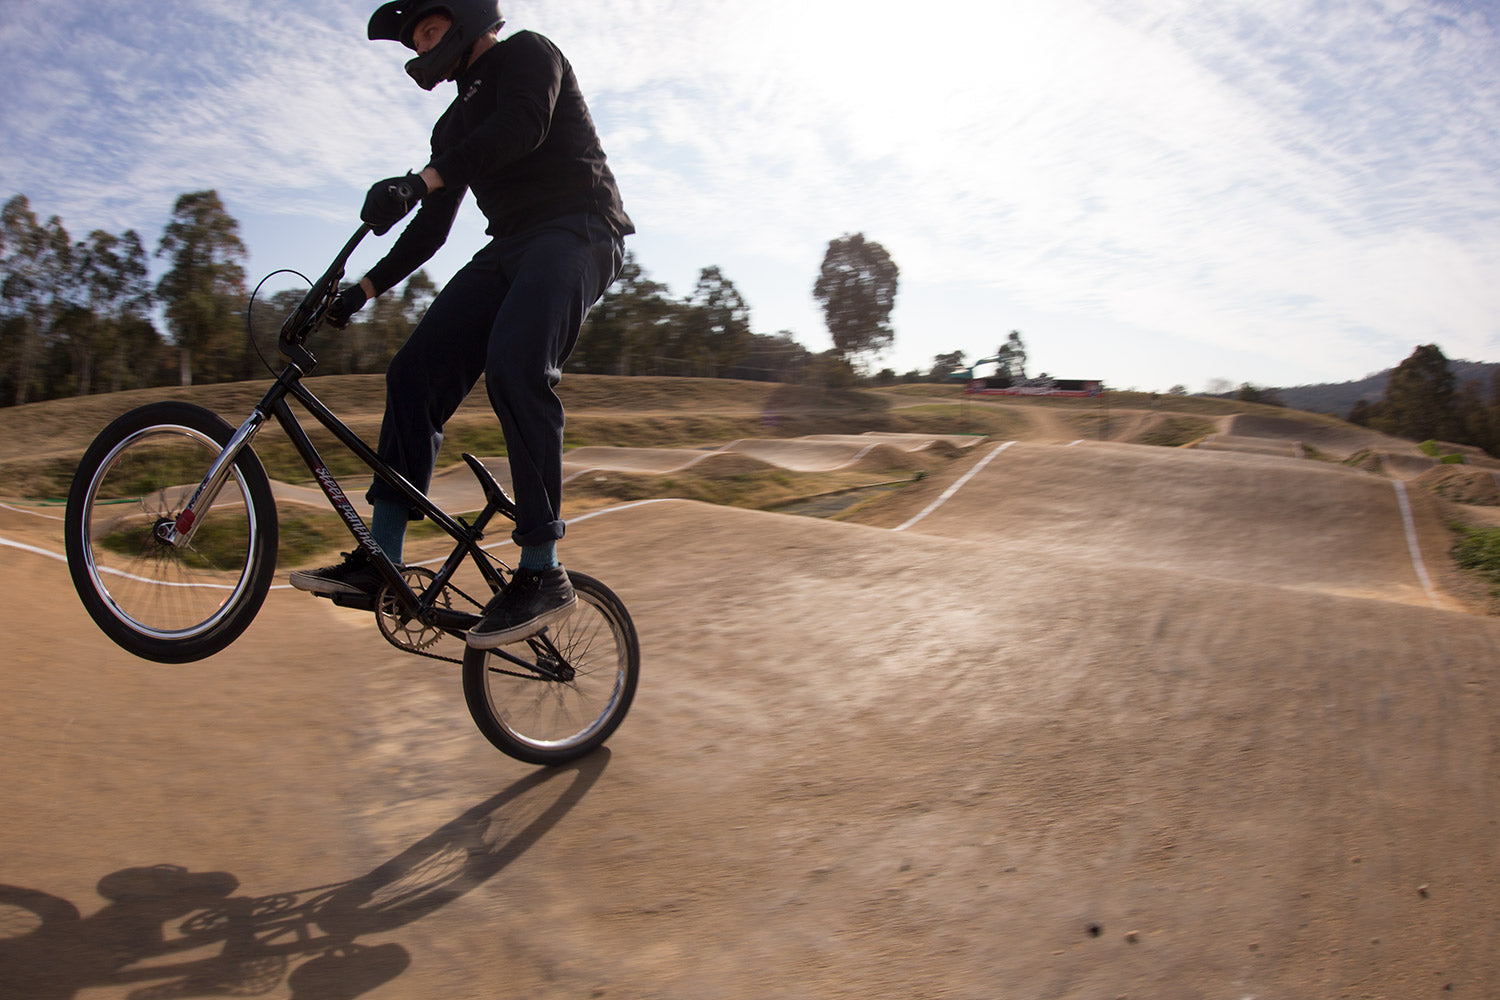 S&M steel panther rhysty manual tuggeranong bmx track